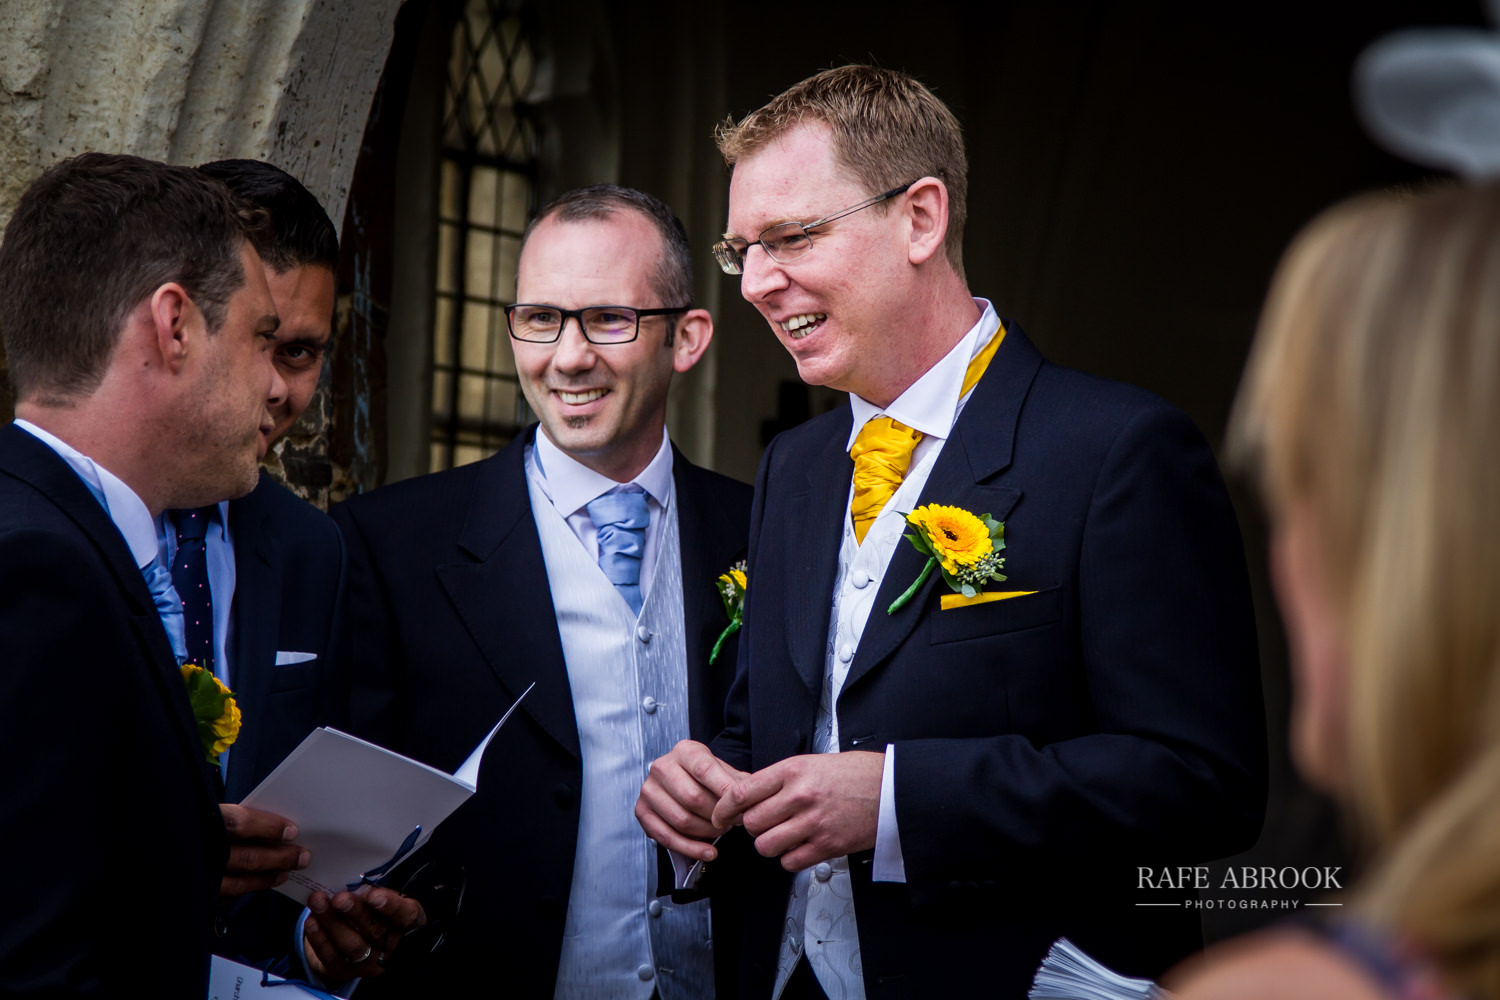 minstrel court wedding royston cambridge hertfordshire wedding photographer-1098.jpg